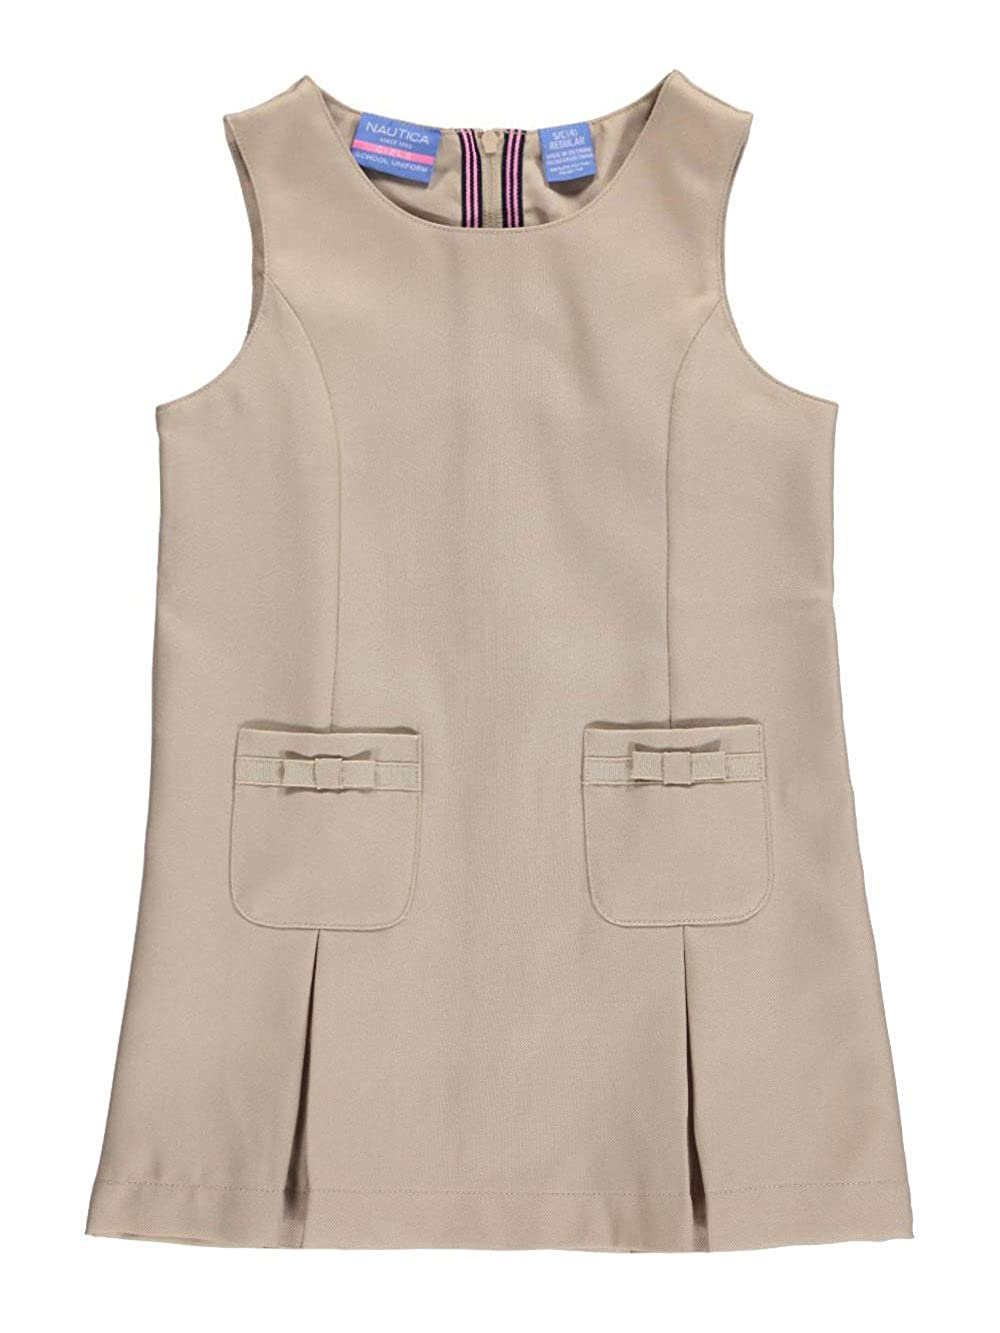 Nautica Little Girls' Grosgrain Bow Pockets Jumper 6